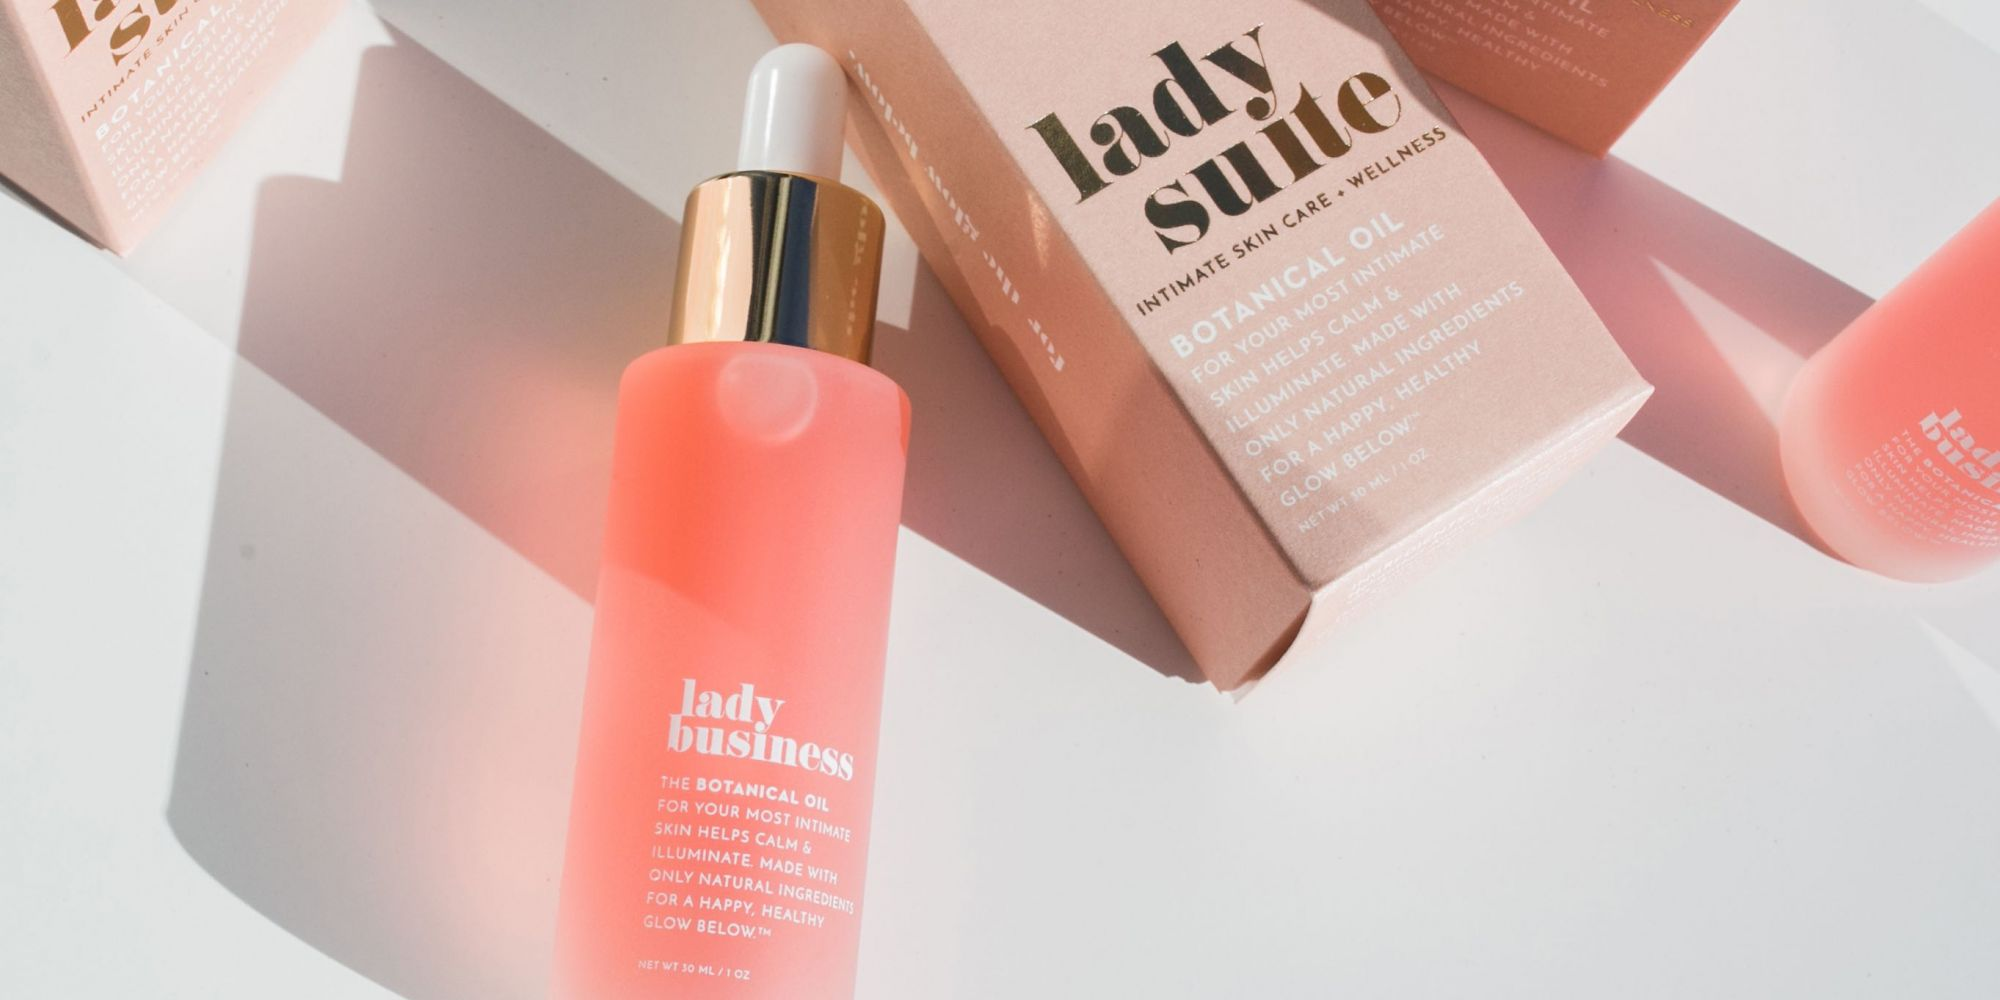 Lady Suite Spotlights The Vulva With Sophisticated Skincare For Down There